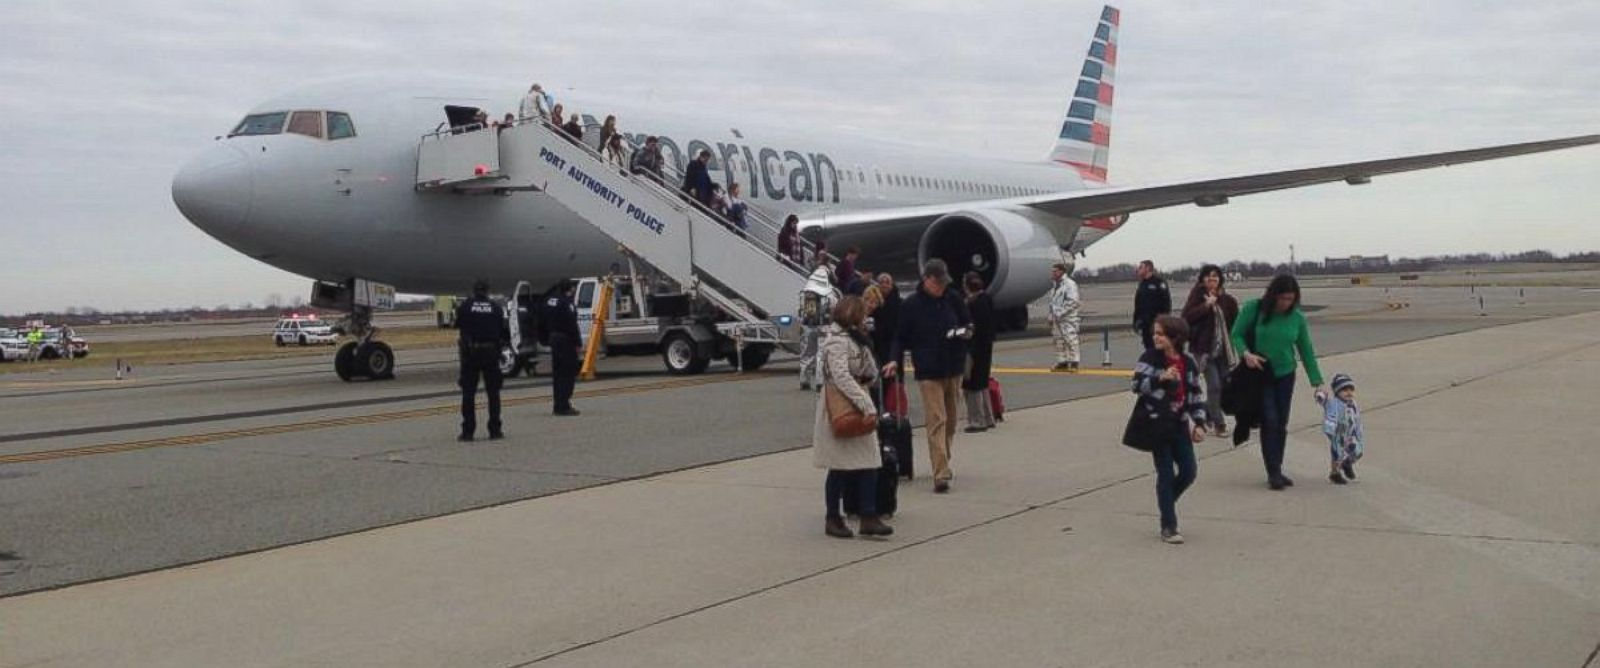 """PHOTO: Beth Henderson @bahenderson posted this photo to Twitter on Nov. 30, 2014 with the caption, """"Arrived in from Barcelona today and promptly escorted off, surrounded by police but at least were all safe."""""""